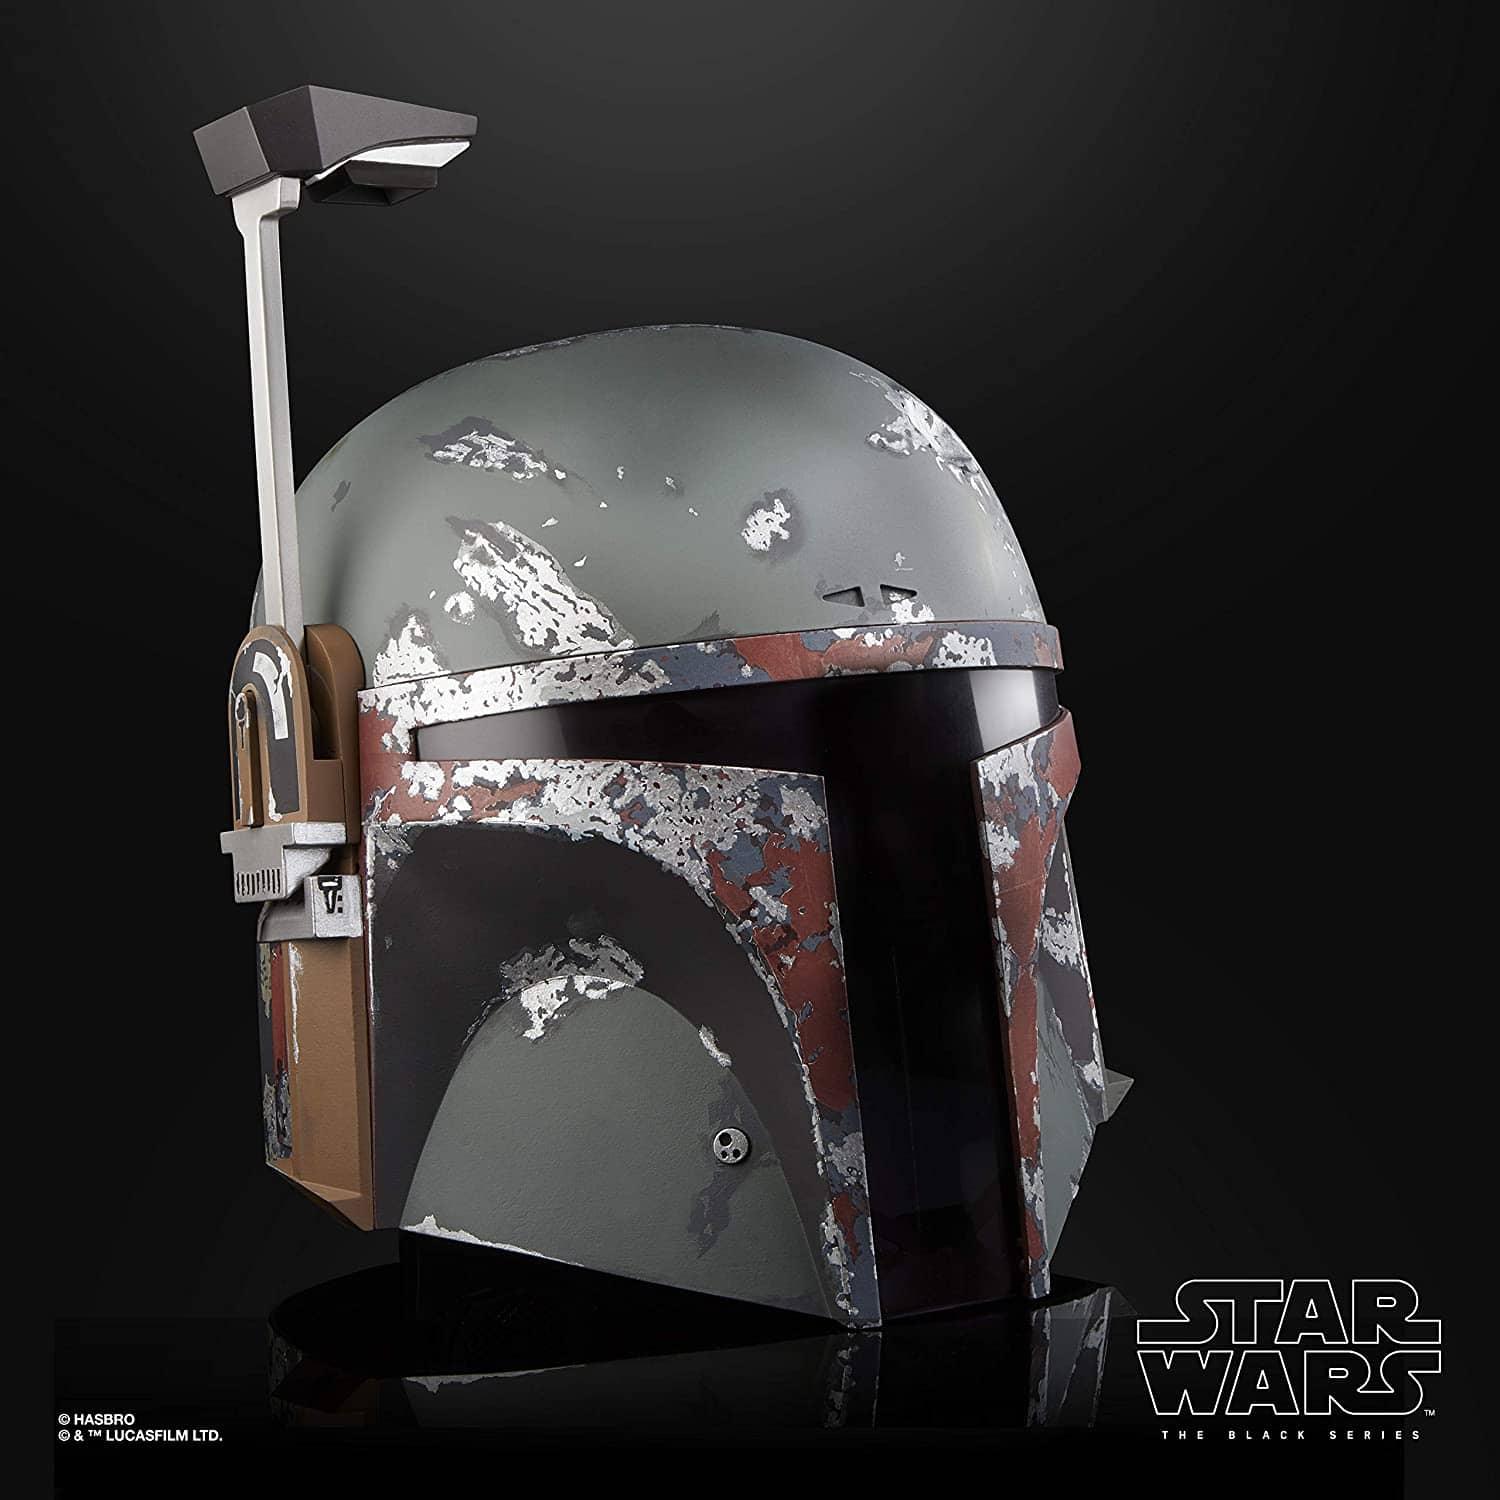 Star Wars: The Black Series Boba Fett Premium Full Scale Electronic Collectible Helmet $97.49 + Free Shipping via GameStop